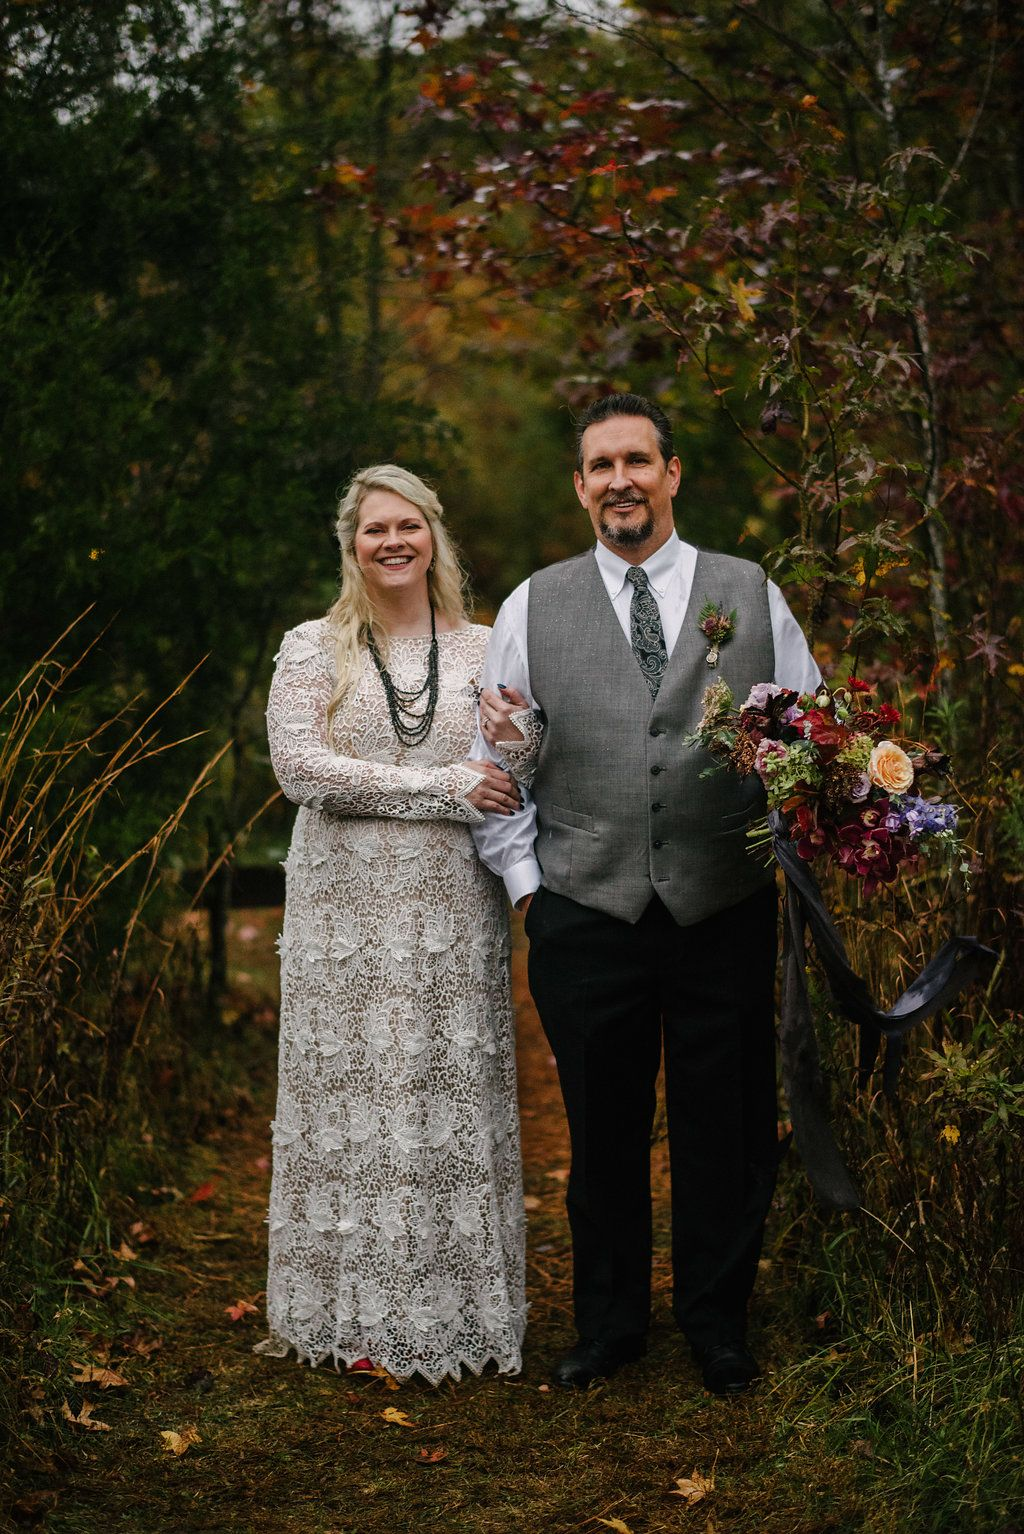 Southern Gothic Wiccan Wedding In The Rain Wiccan Wedding Rain Wedding Gothic Wedding